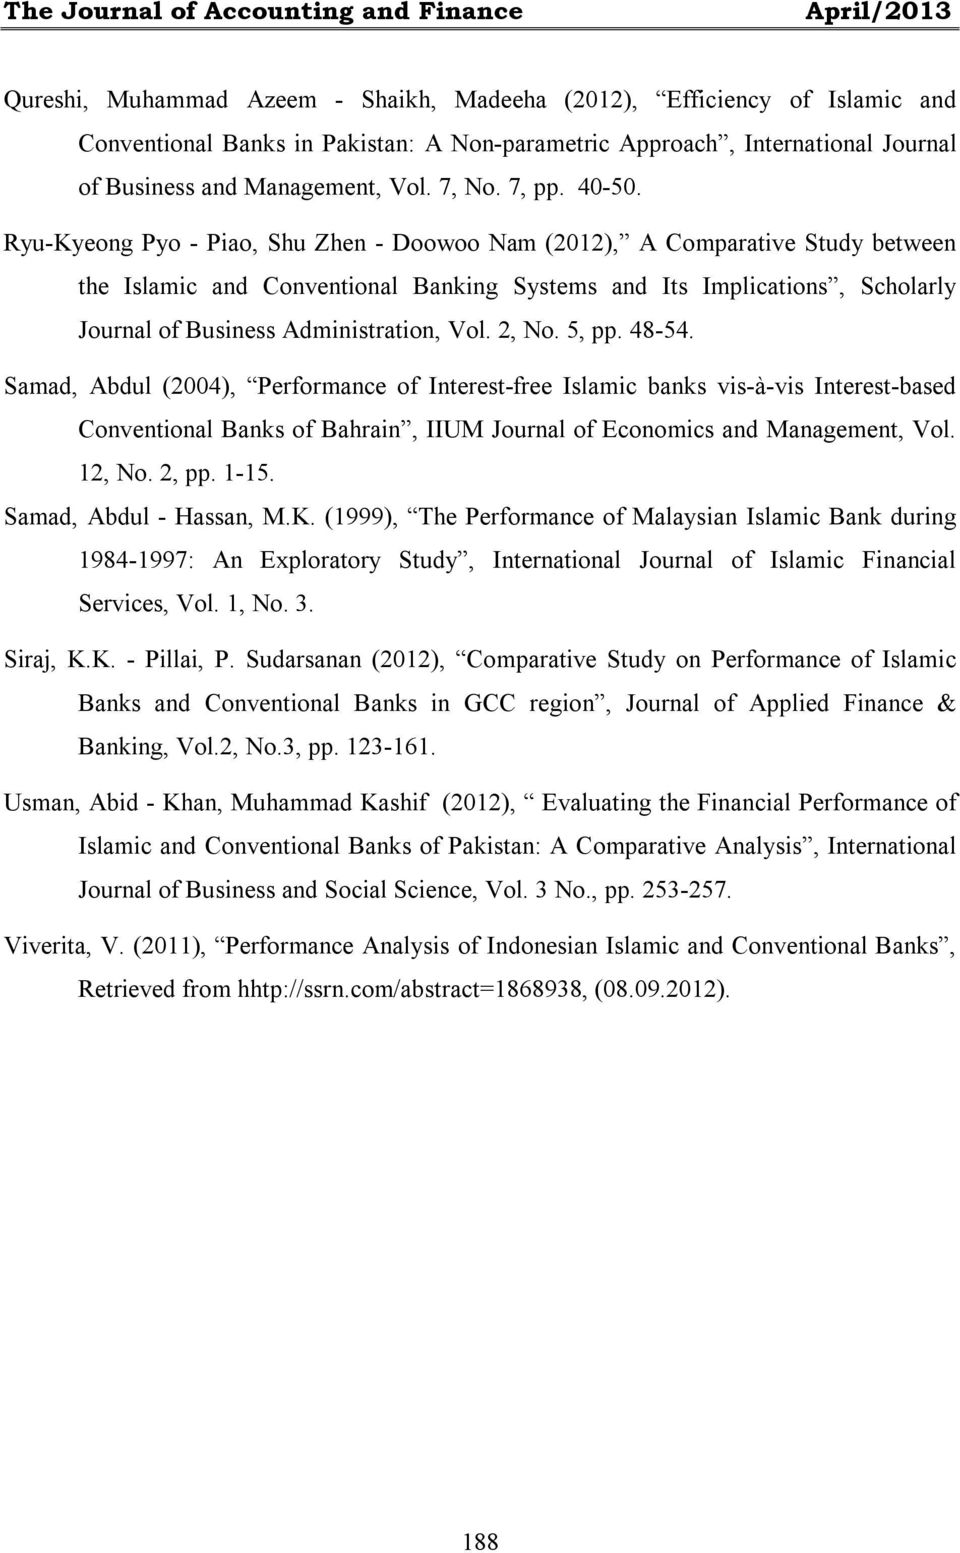 Ryu-Kyeong Pyo - Piao, Shu Zhen - Doowoo Nam (2012), A Comparative Study between the Islamic and Conventional Banking Systems and Its Implications, Scholarly Journal of Business Administration, Vol.